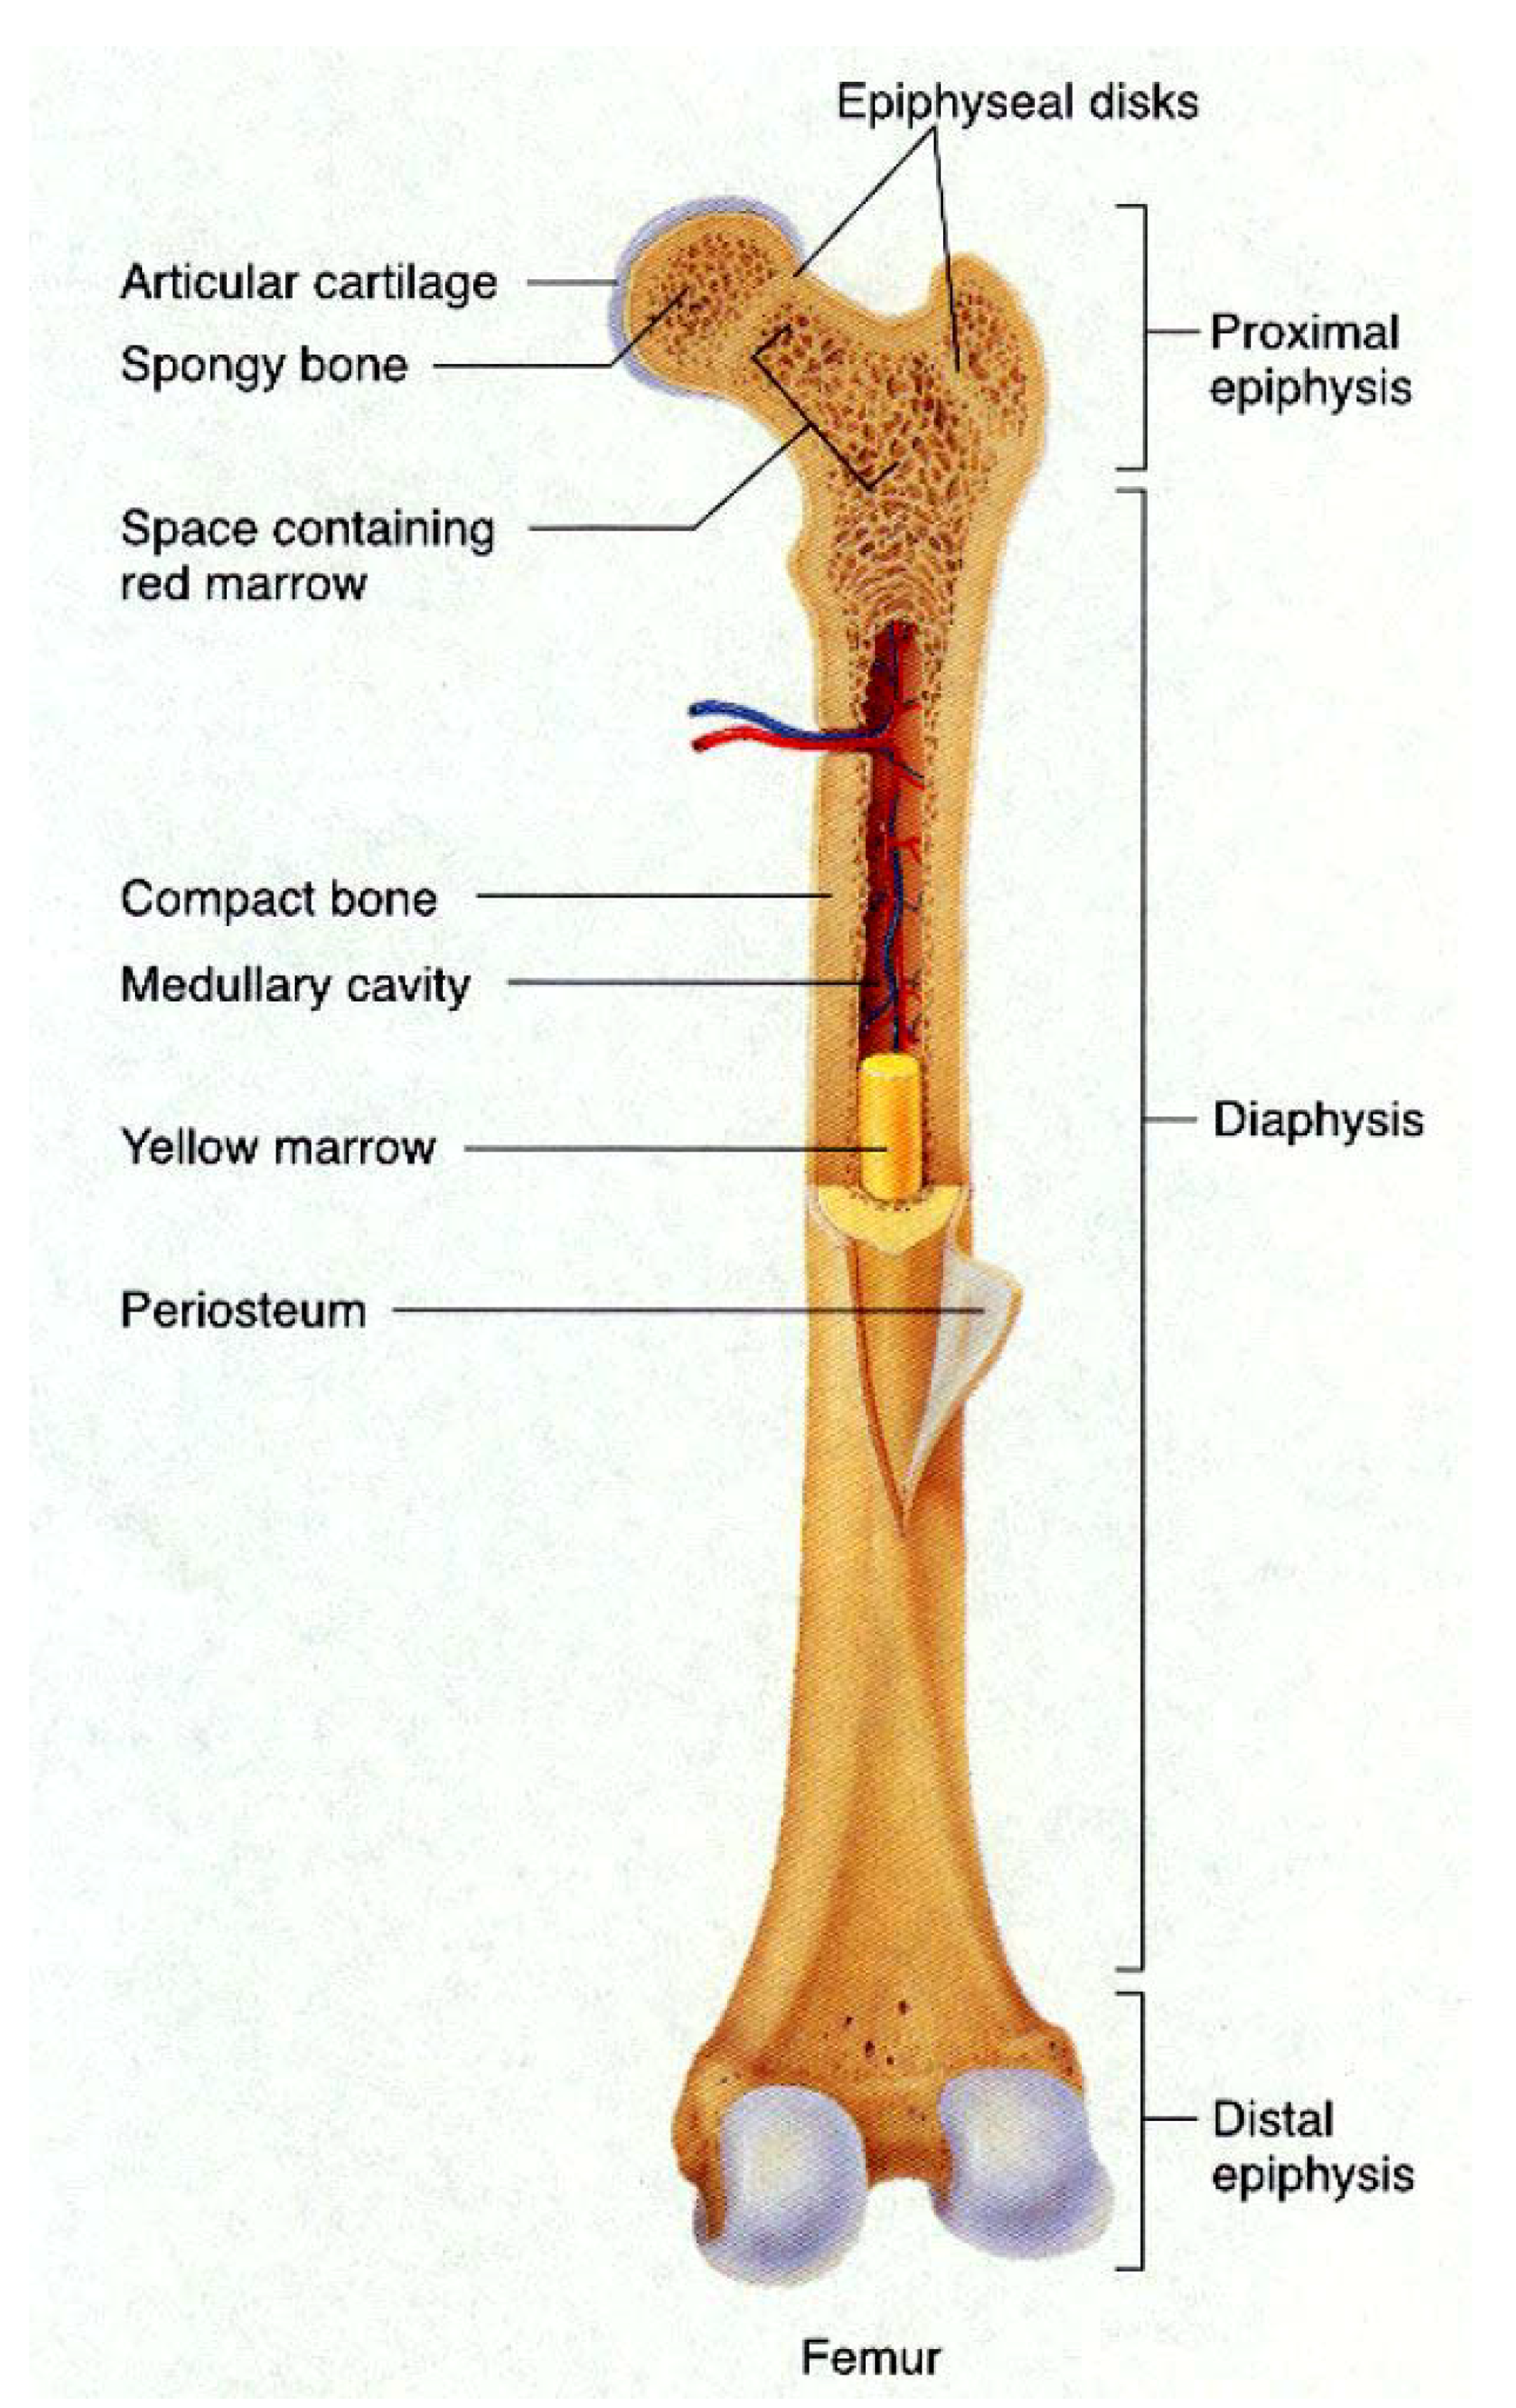 Which Letter Indicates The Region Of A Long Bone That Contains The